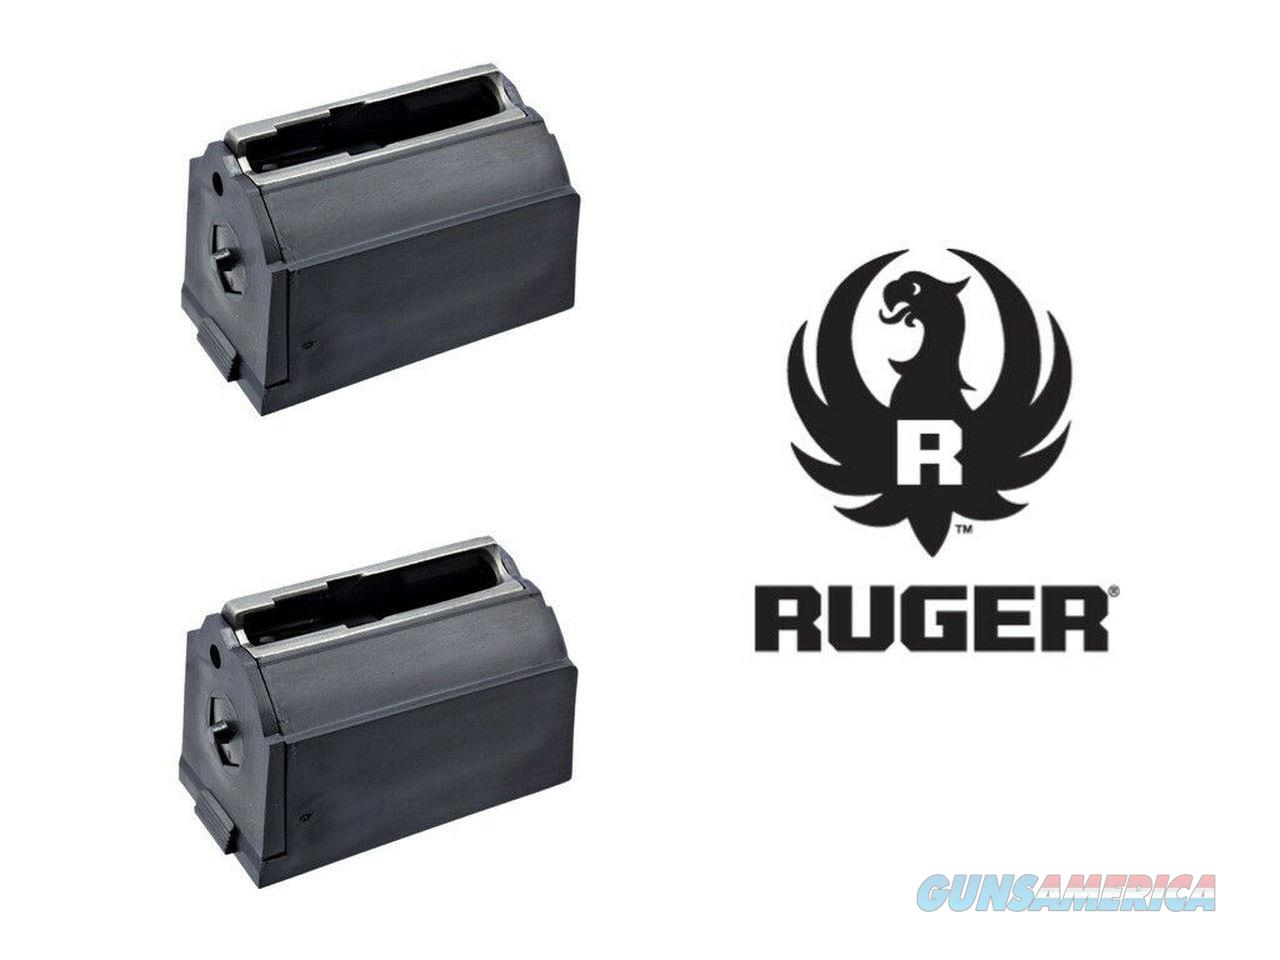 2-Pack Ruger JHX-2 17 77/17 Hornet Mag in Black Magazine Magazines Mags 5 Round  Non-Guns > Ammunition